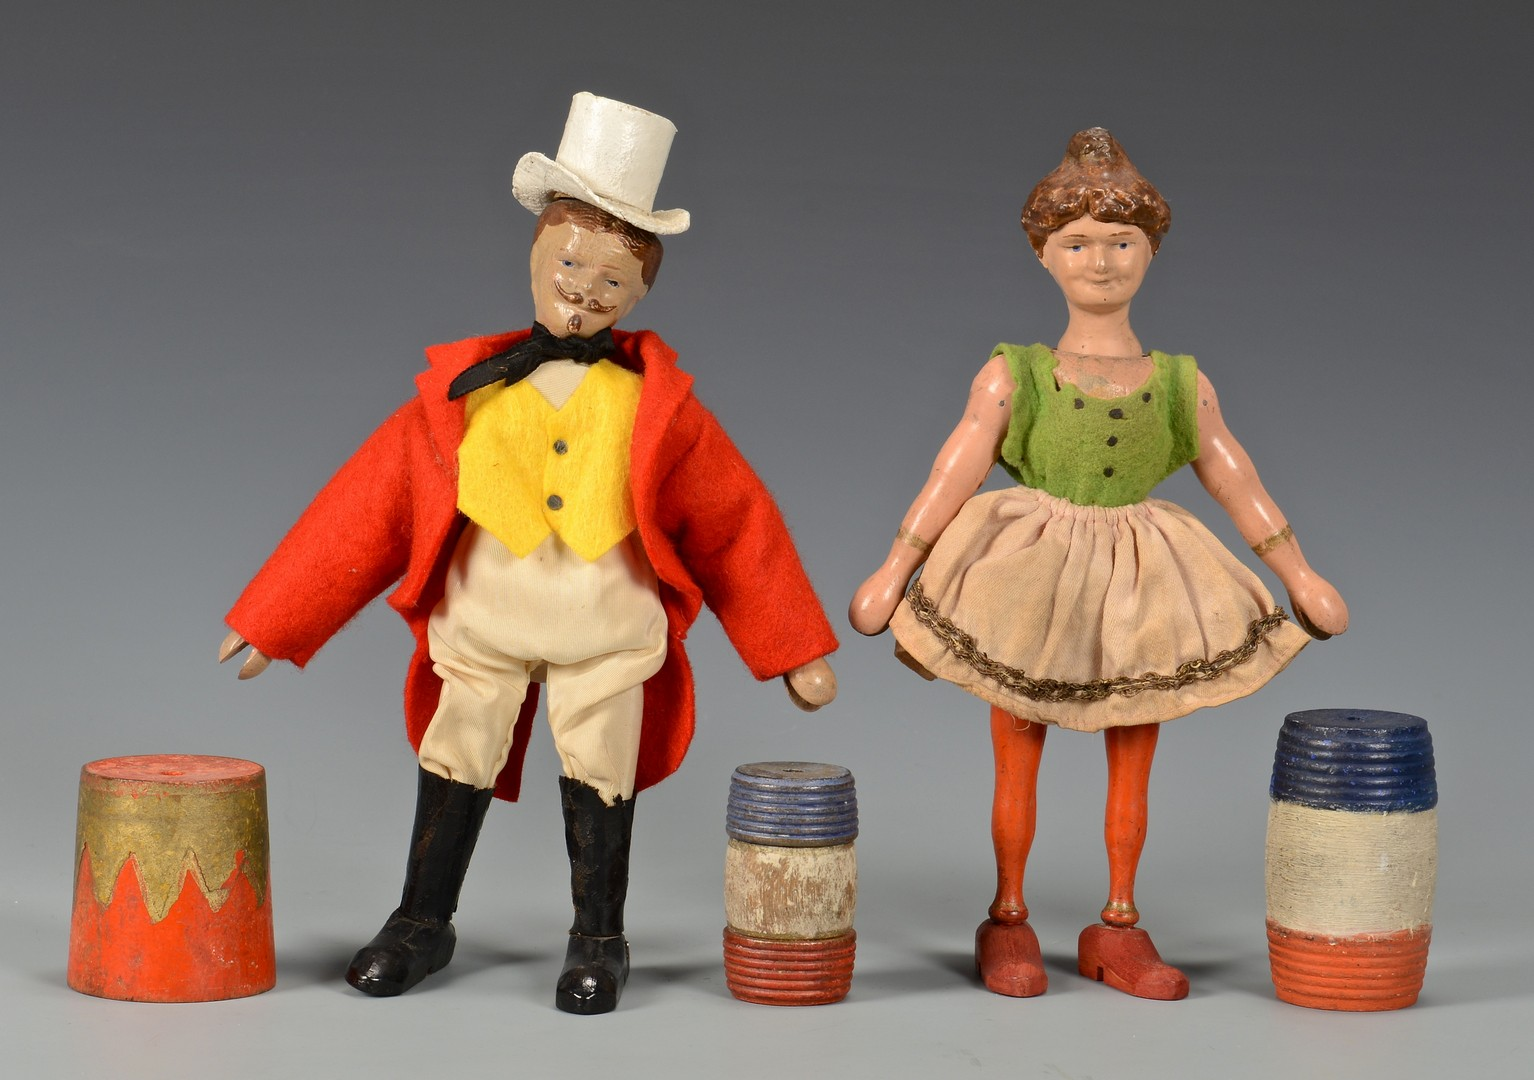 Lot 585: Schoenhut Circus Figures, Animals, & Access., 14 pcs.